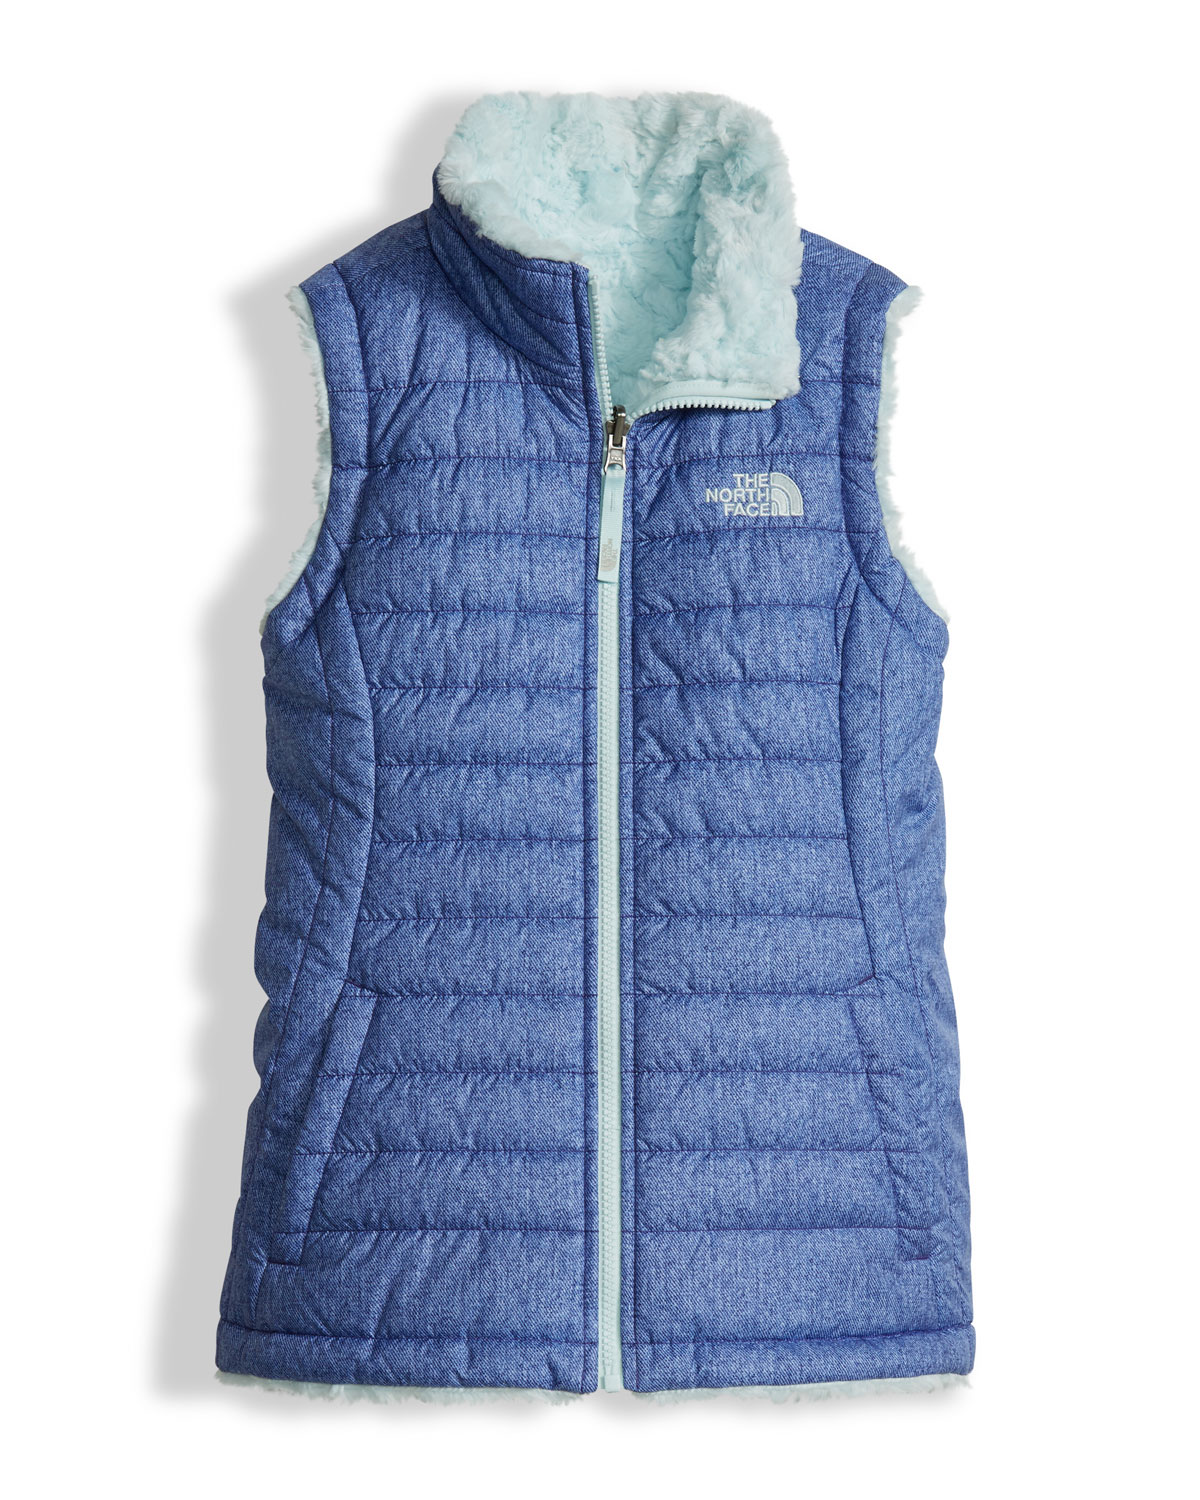 2c5c8a929e3a The North Face Girls  Reversible Mossbud Swirl Vest